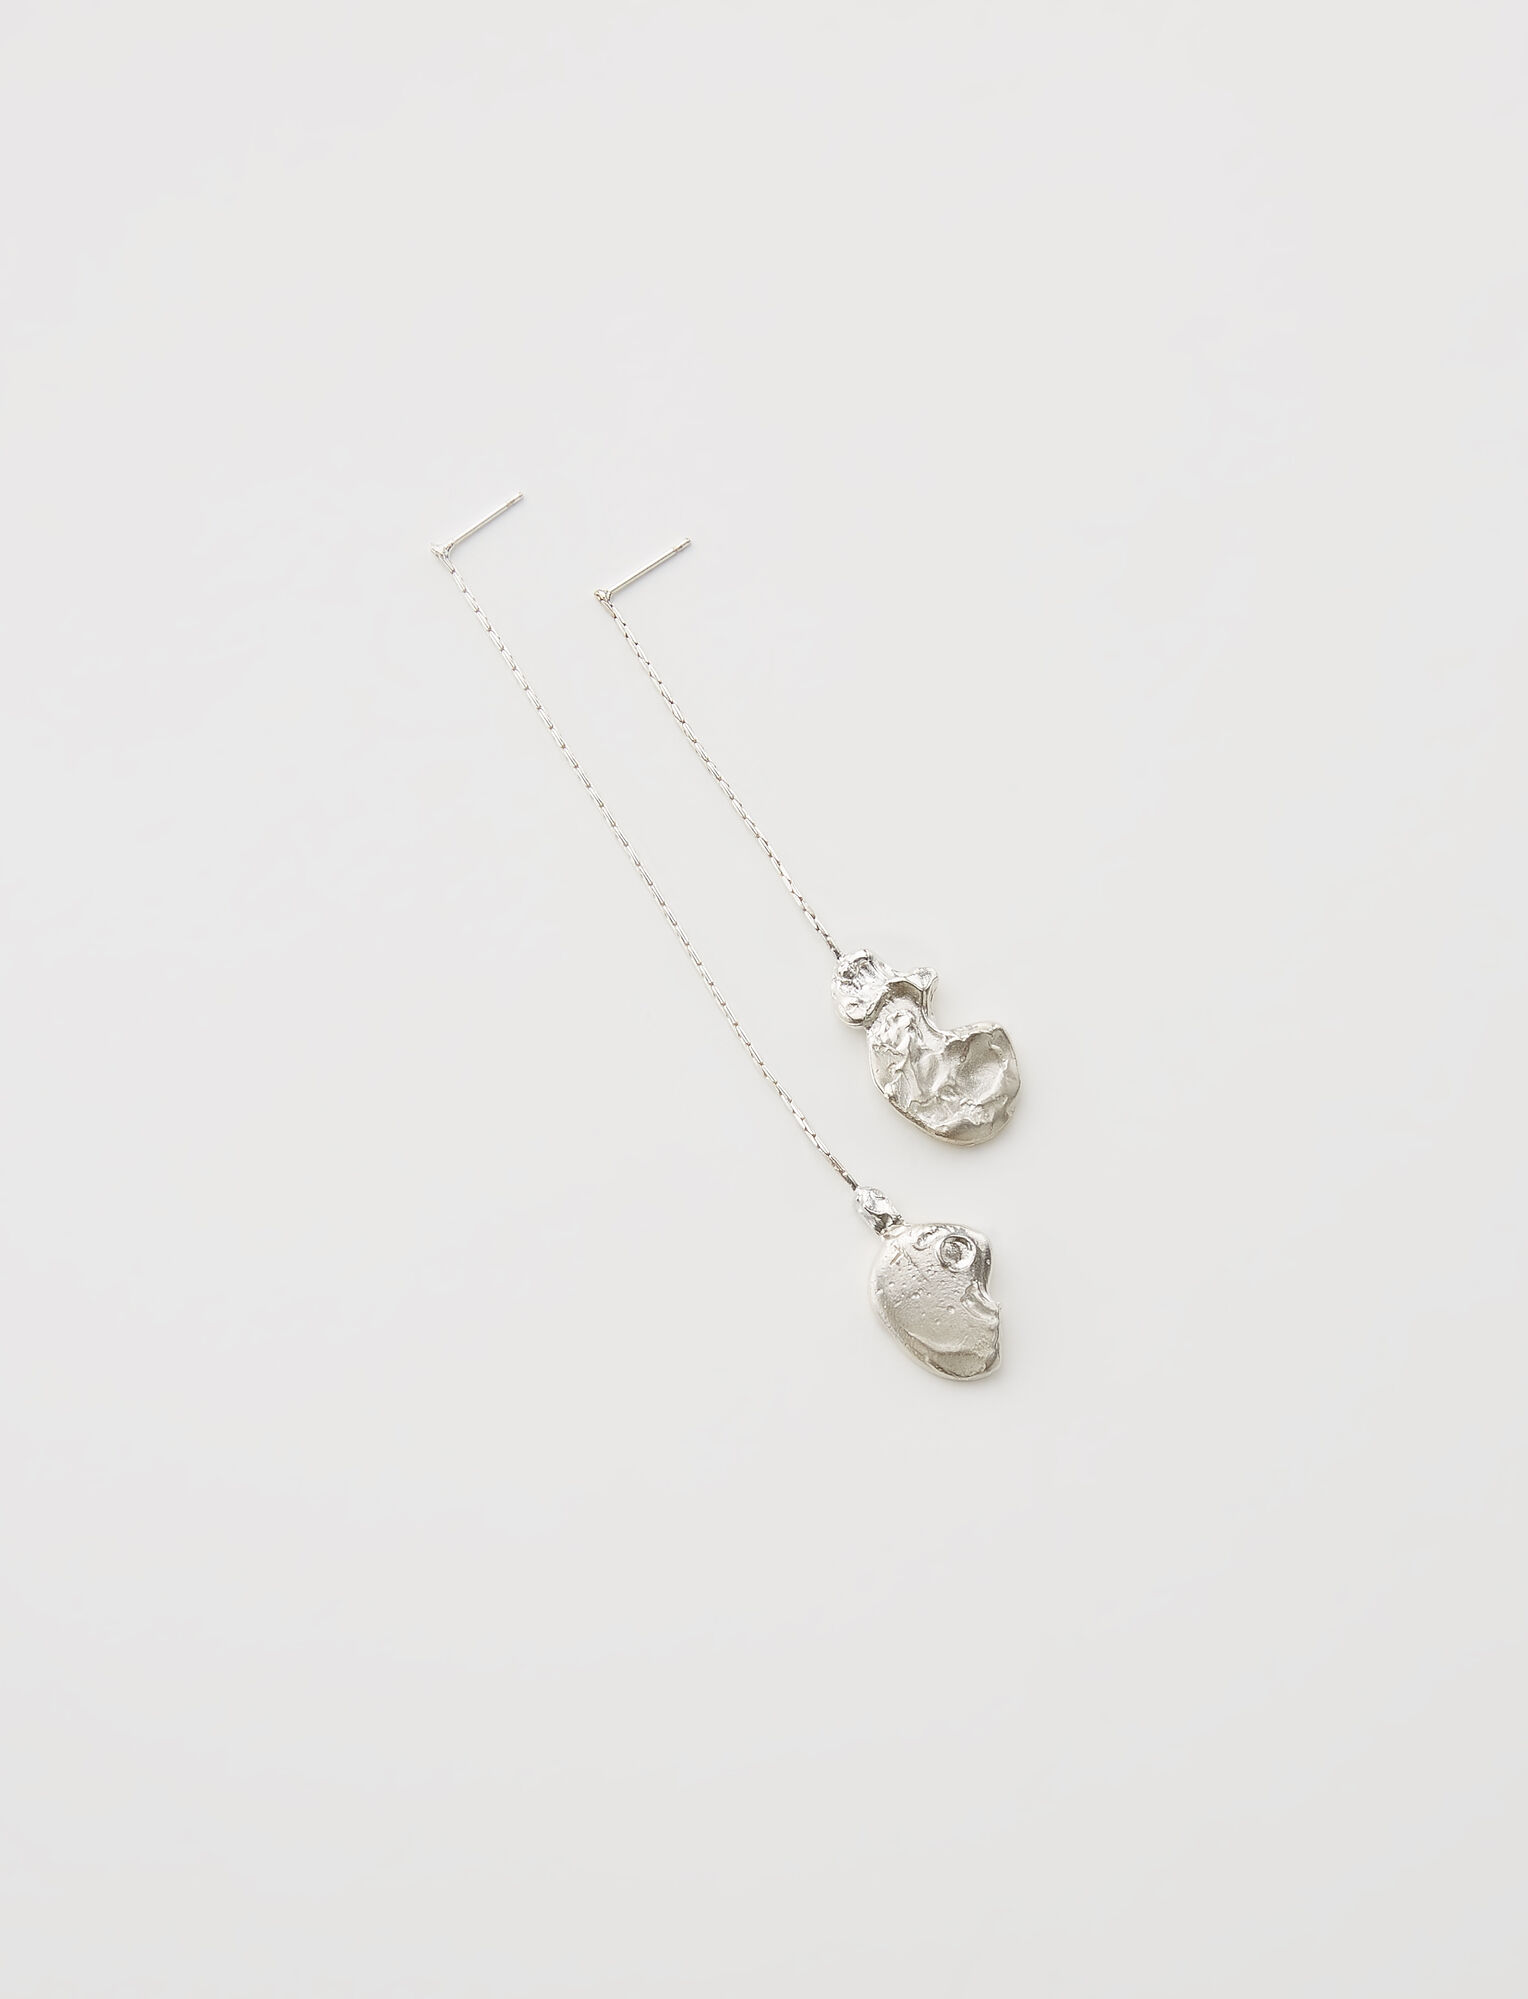 Joseph, La Bella Figura Earrings, in SILVER